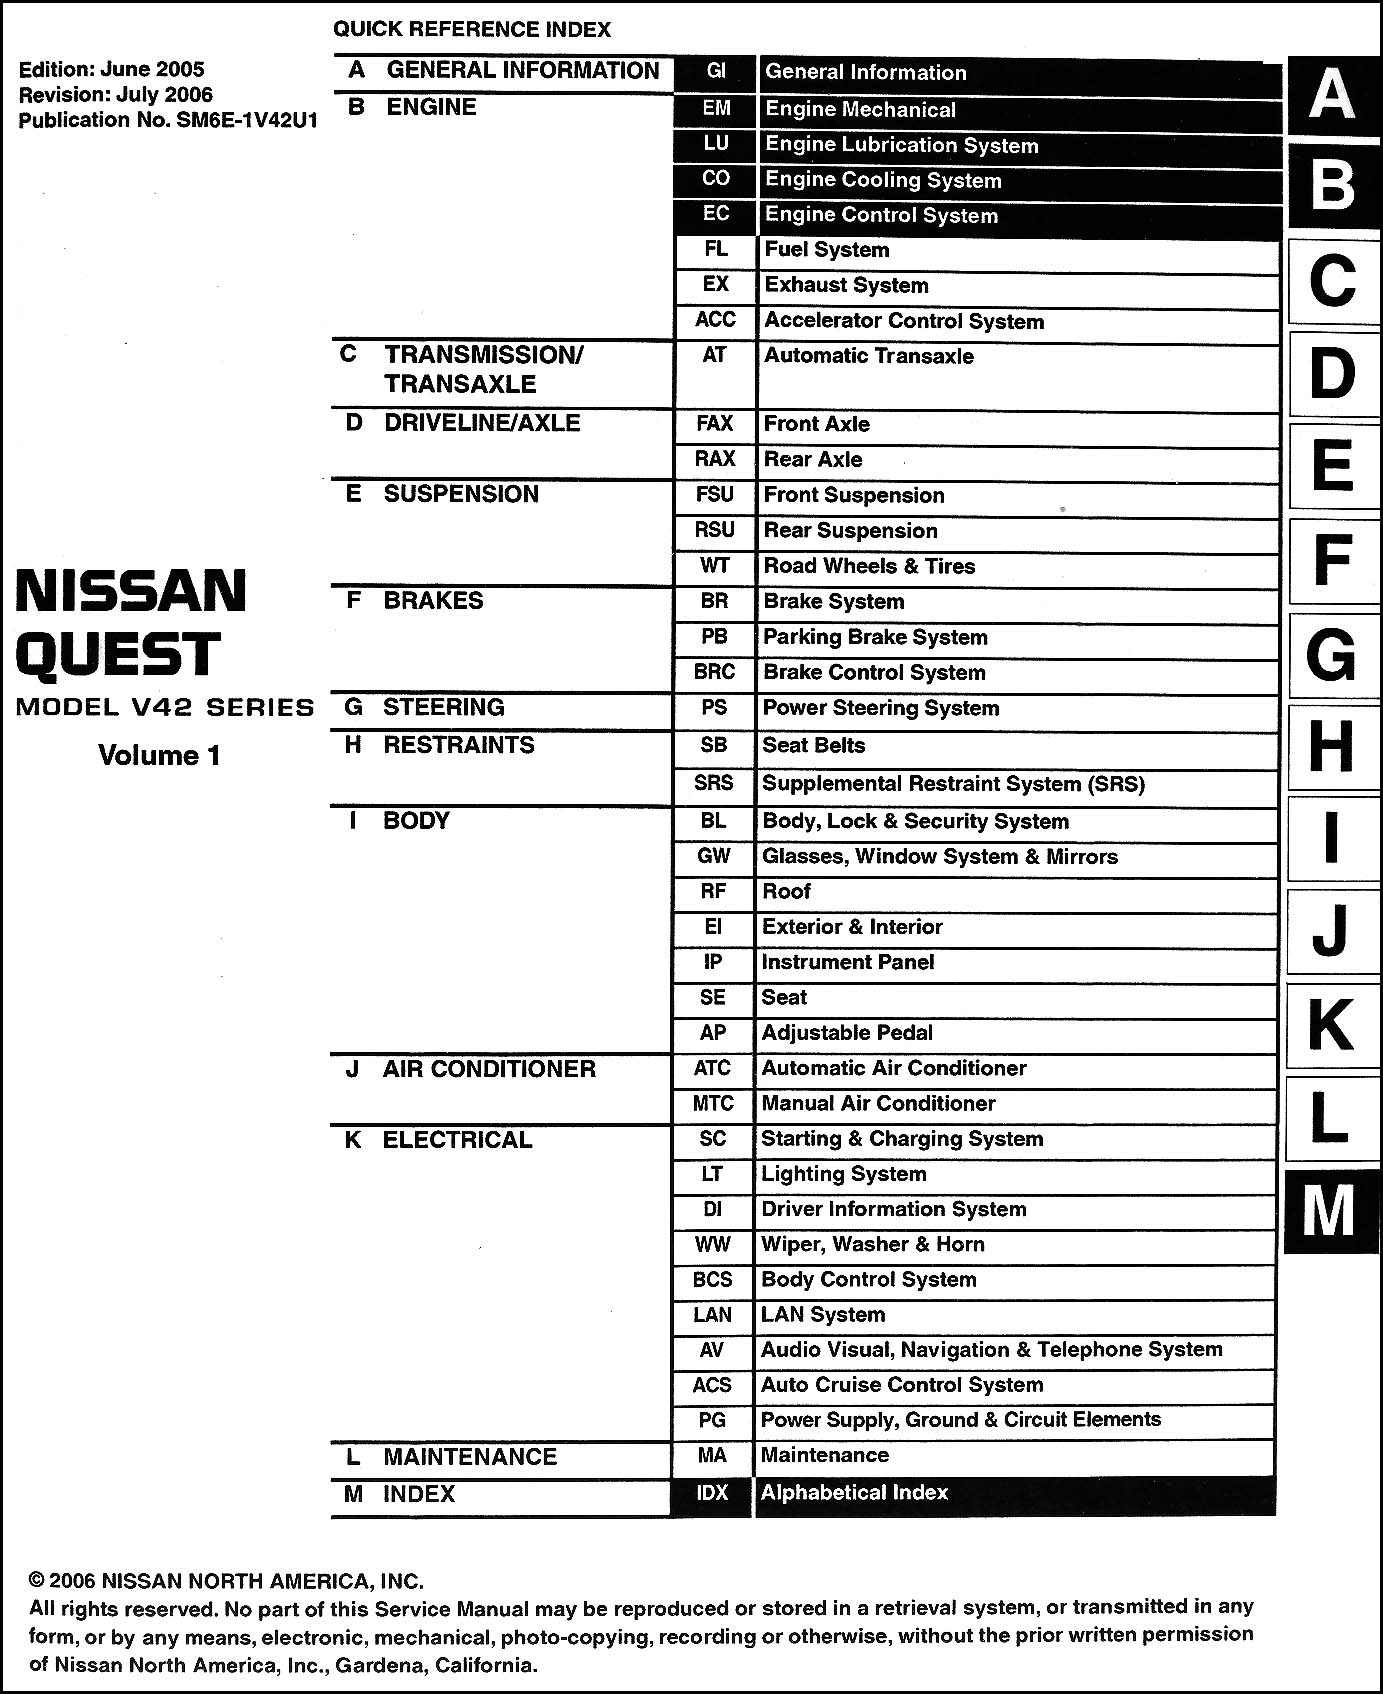 2006 Nissan Quest Repair Manual 4 Volume Set Original · Table of Contents  Page